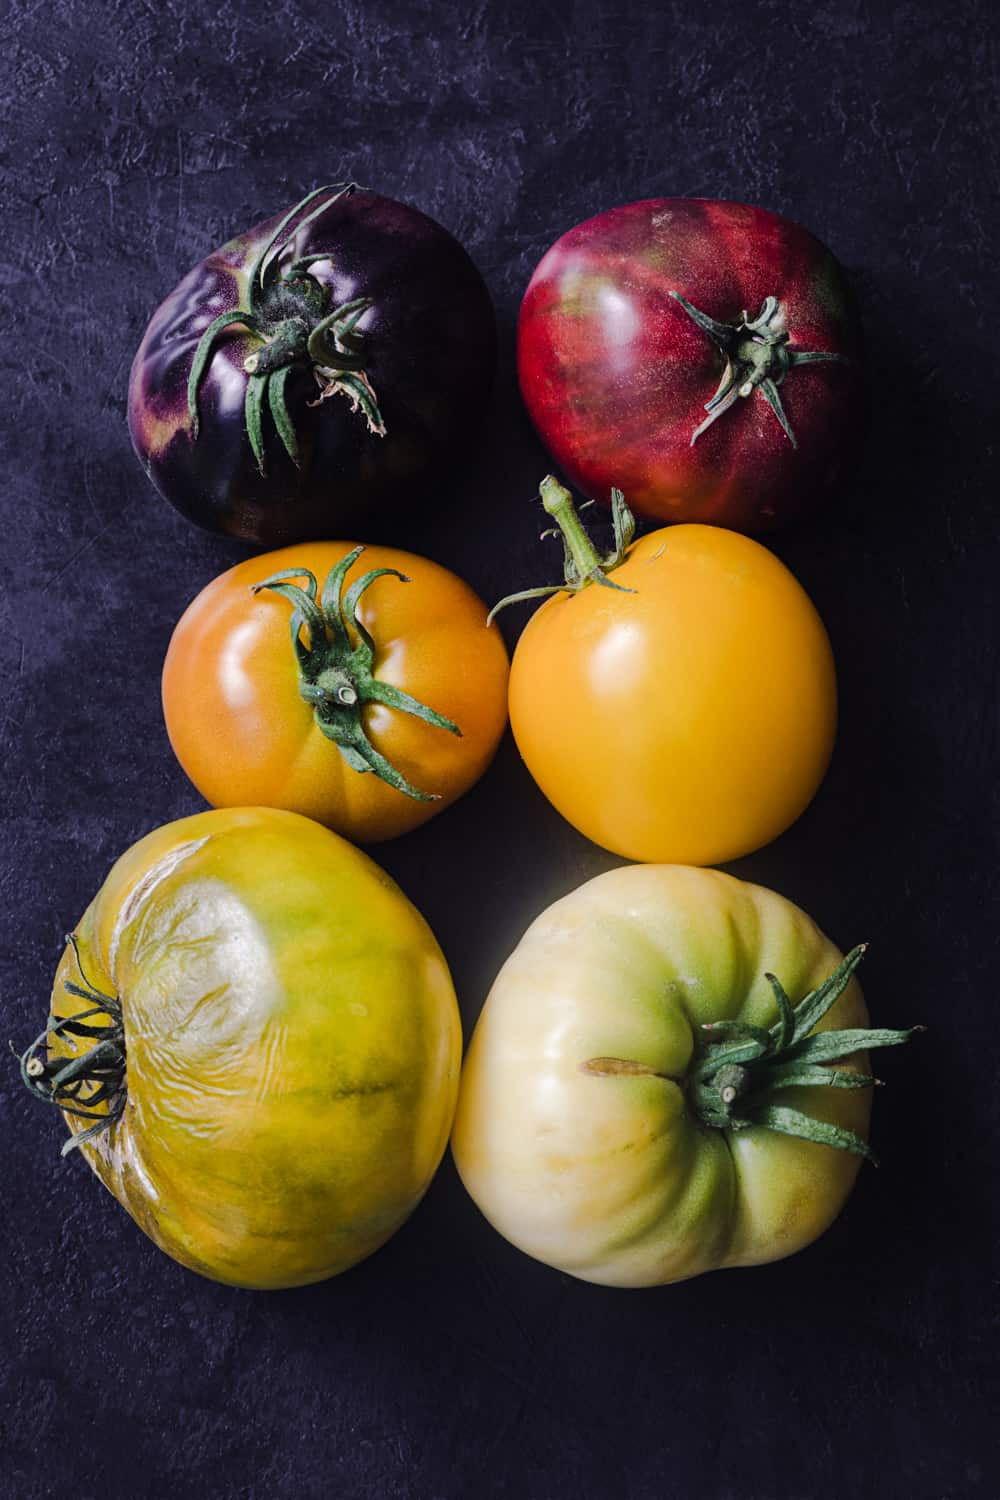 A tomato rainbow! 6 heirloom tomatoes in different colors: Deep purple, deep red, orange, yellow, yellow-green and green-white.